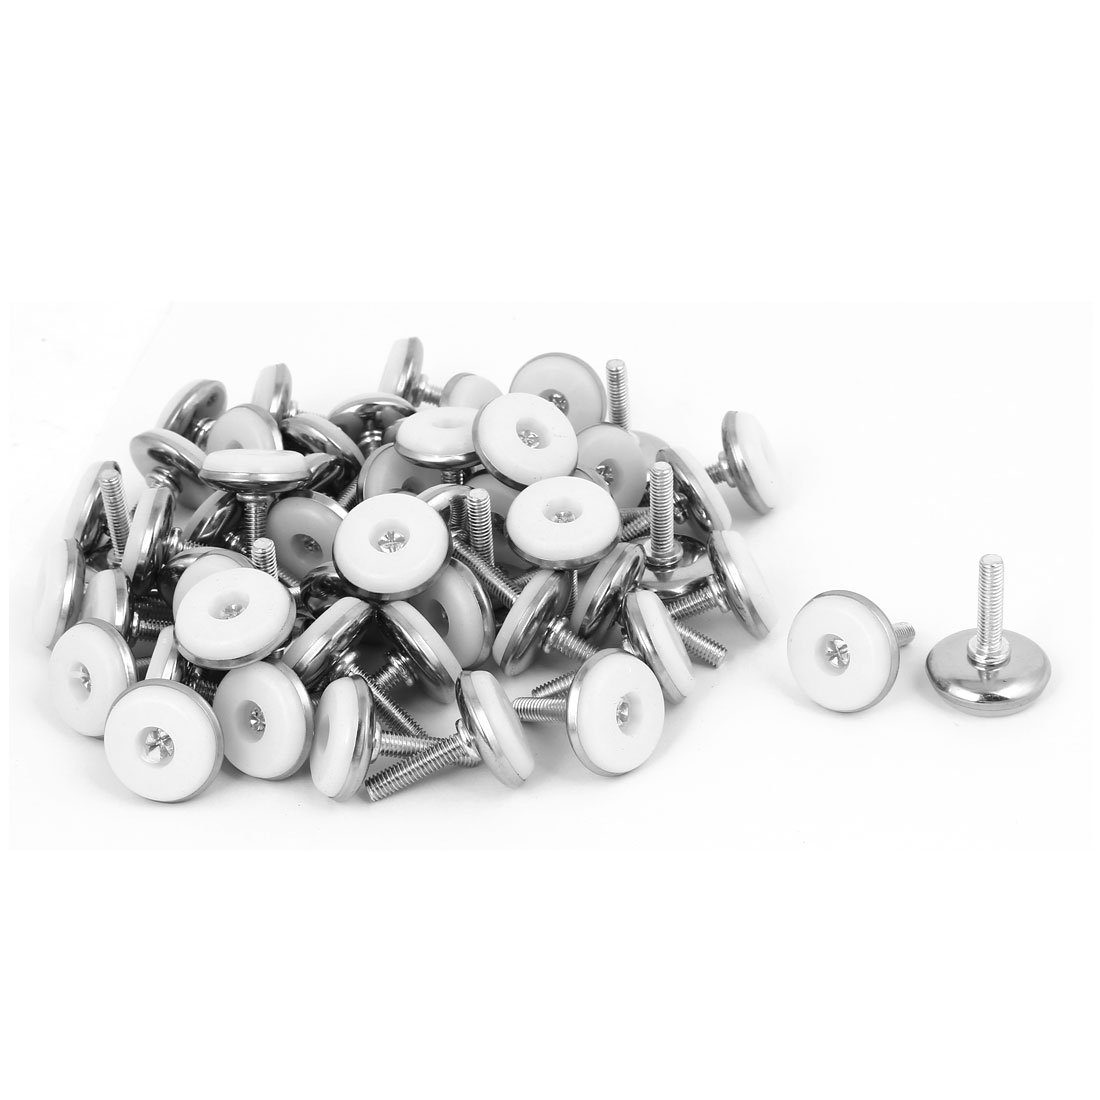 uxcell M6x25mm Plastic Base Adjustable Leveling Glide Foot 60pcs for Cabinet Table Leg